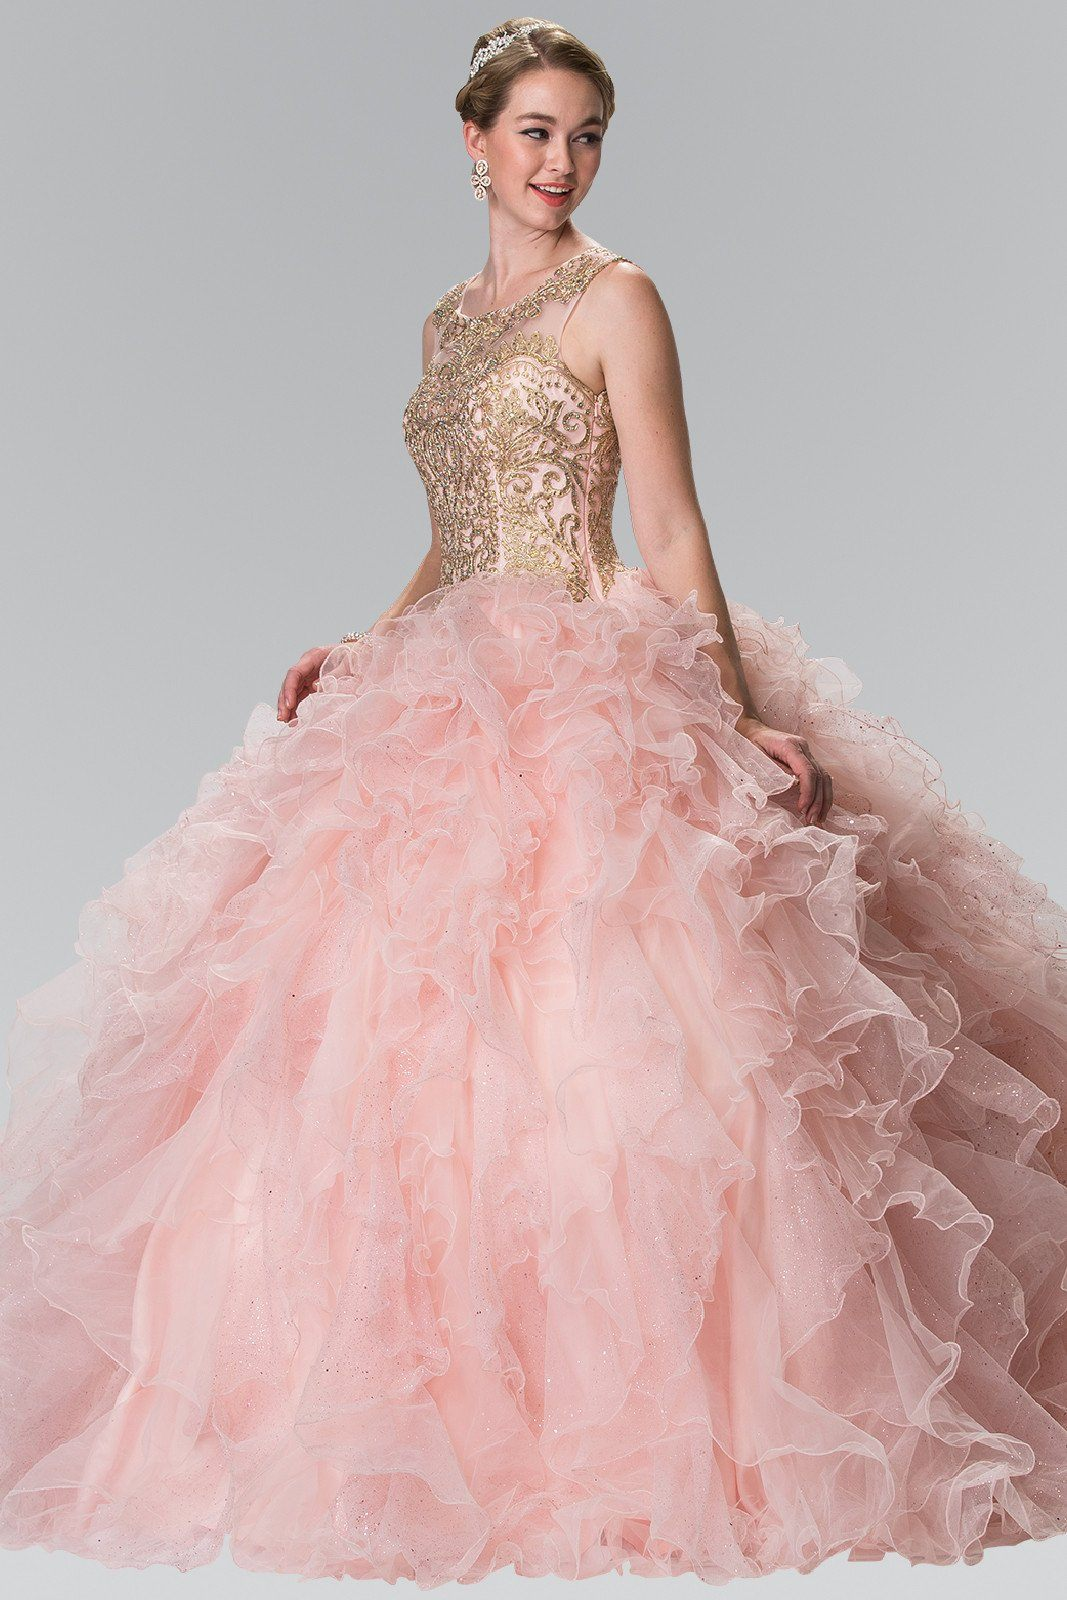 0a92e6baf7d Beaded gold embroidered bodice quinceanera dress  gl2208 - Simply Fab Dress  ...